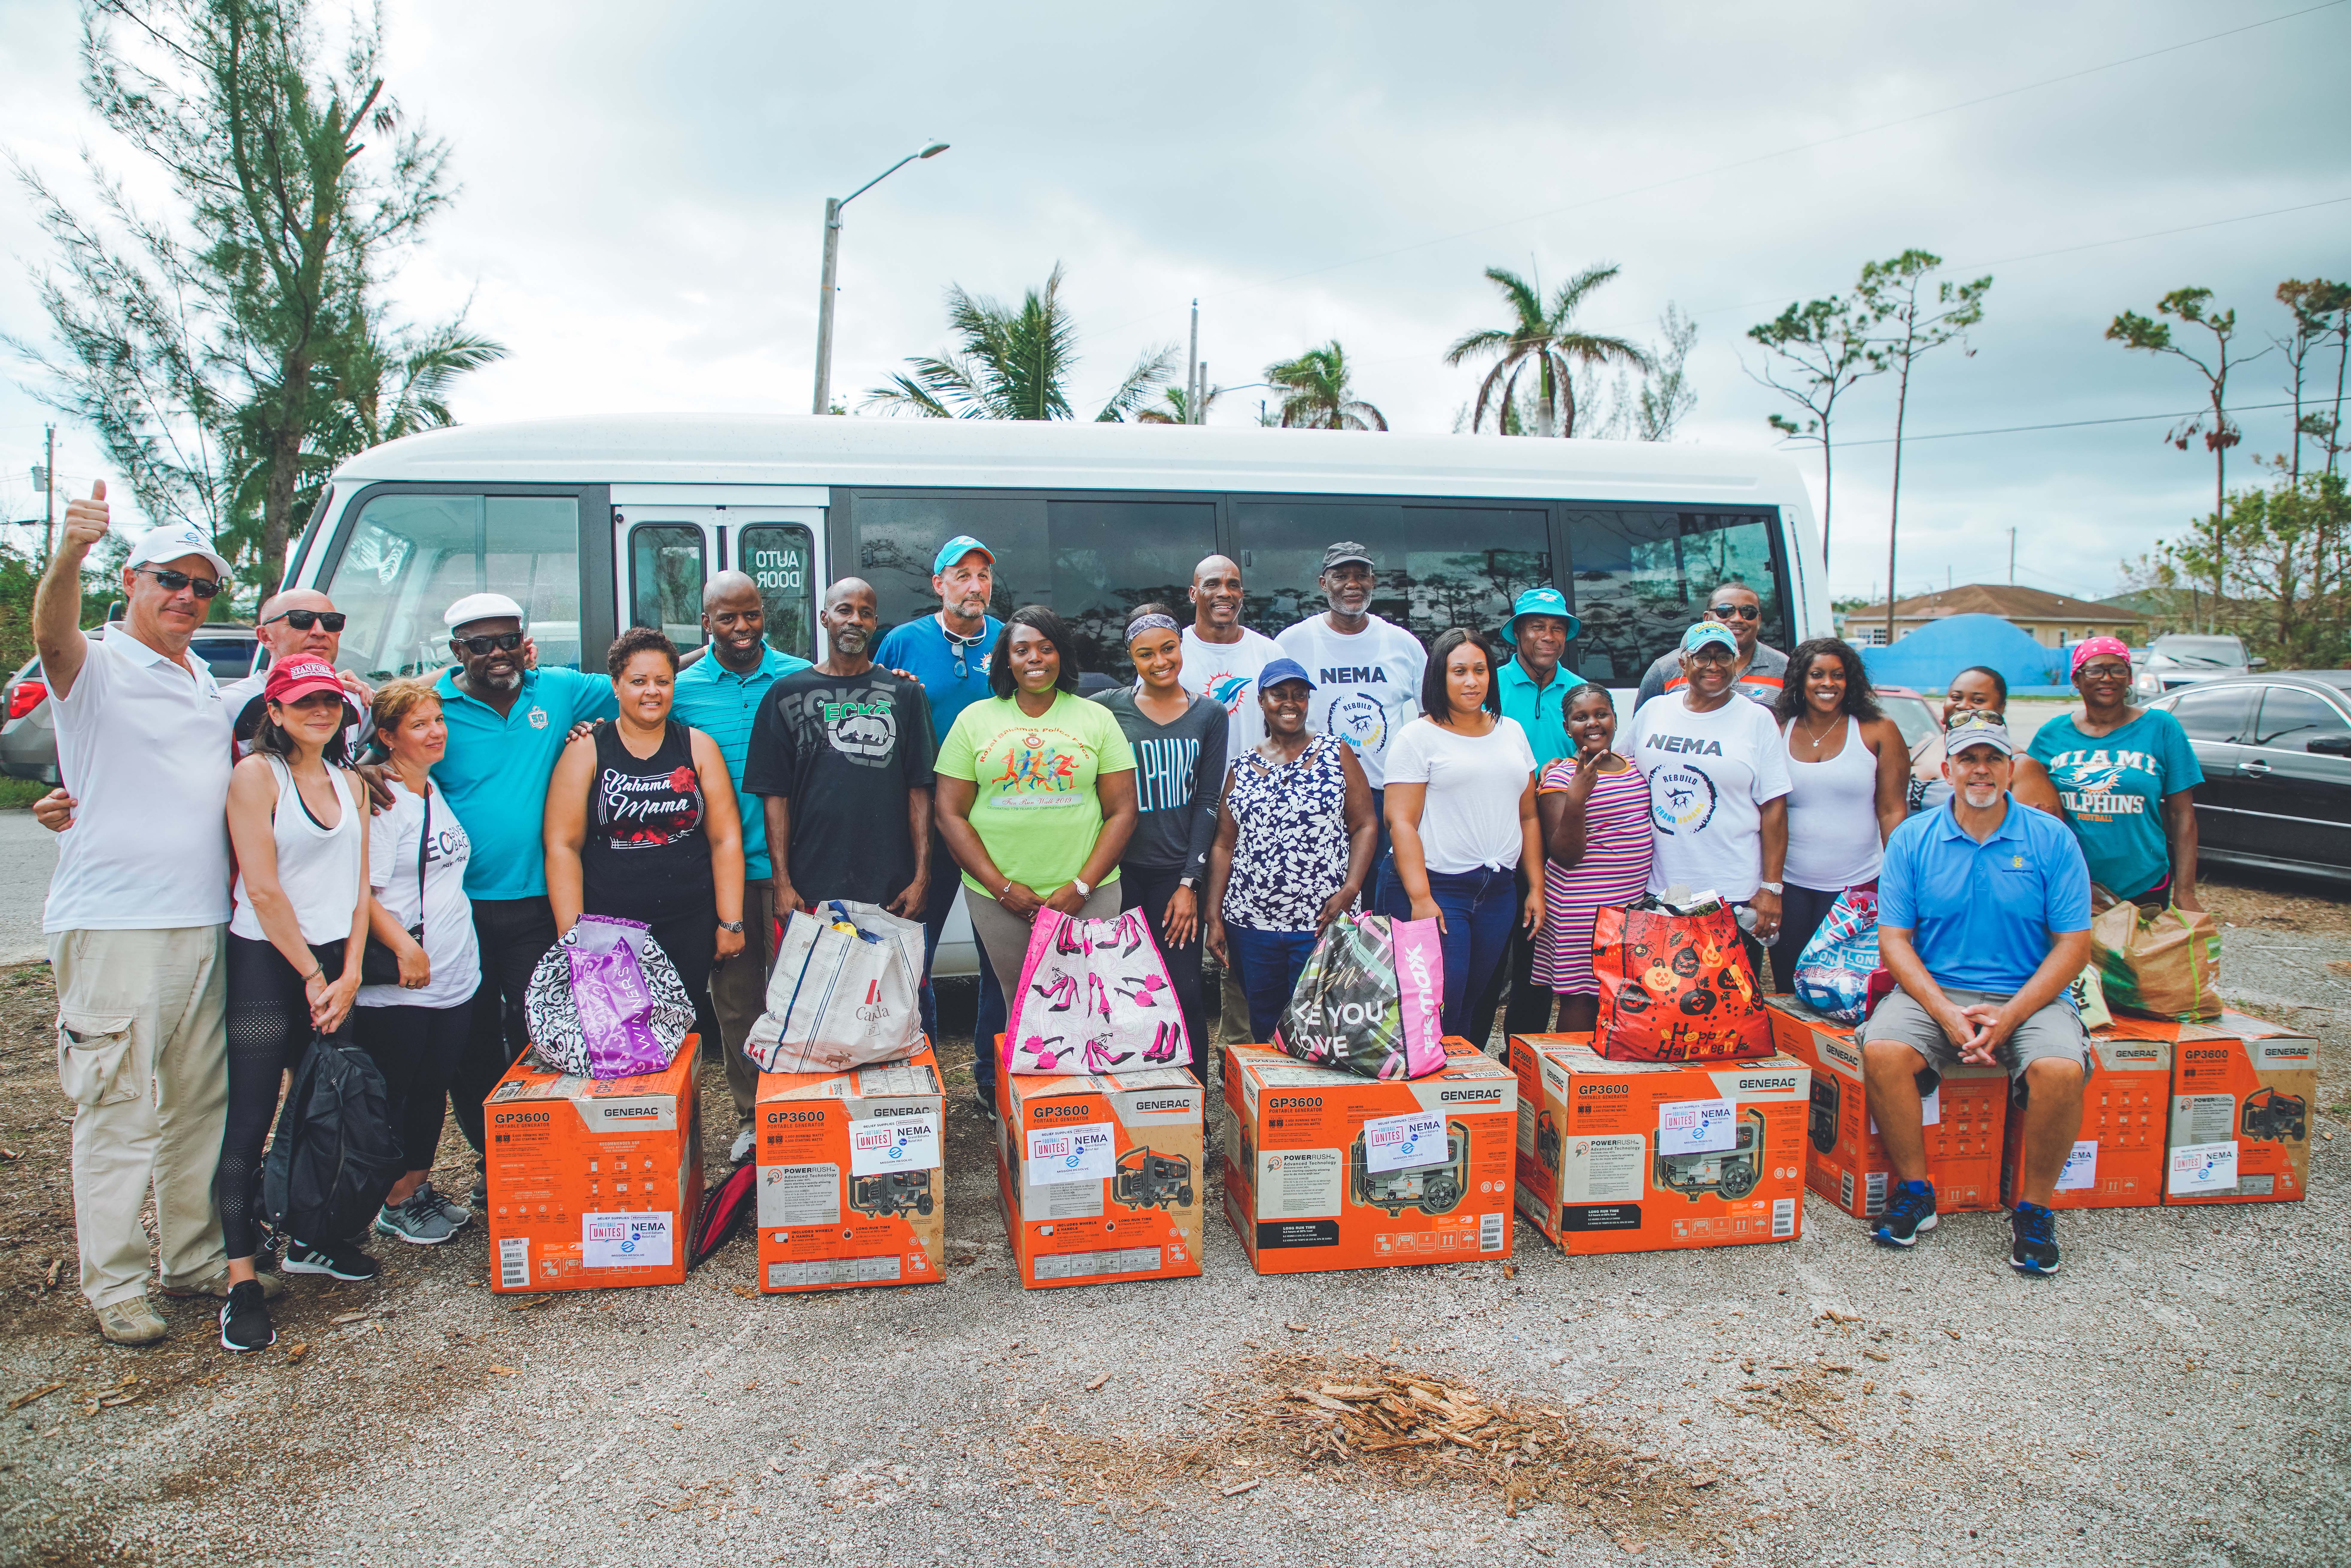 Donated Generators and other needed supplies to Bahamas residents affected by Hurricane Dorian